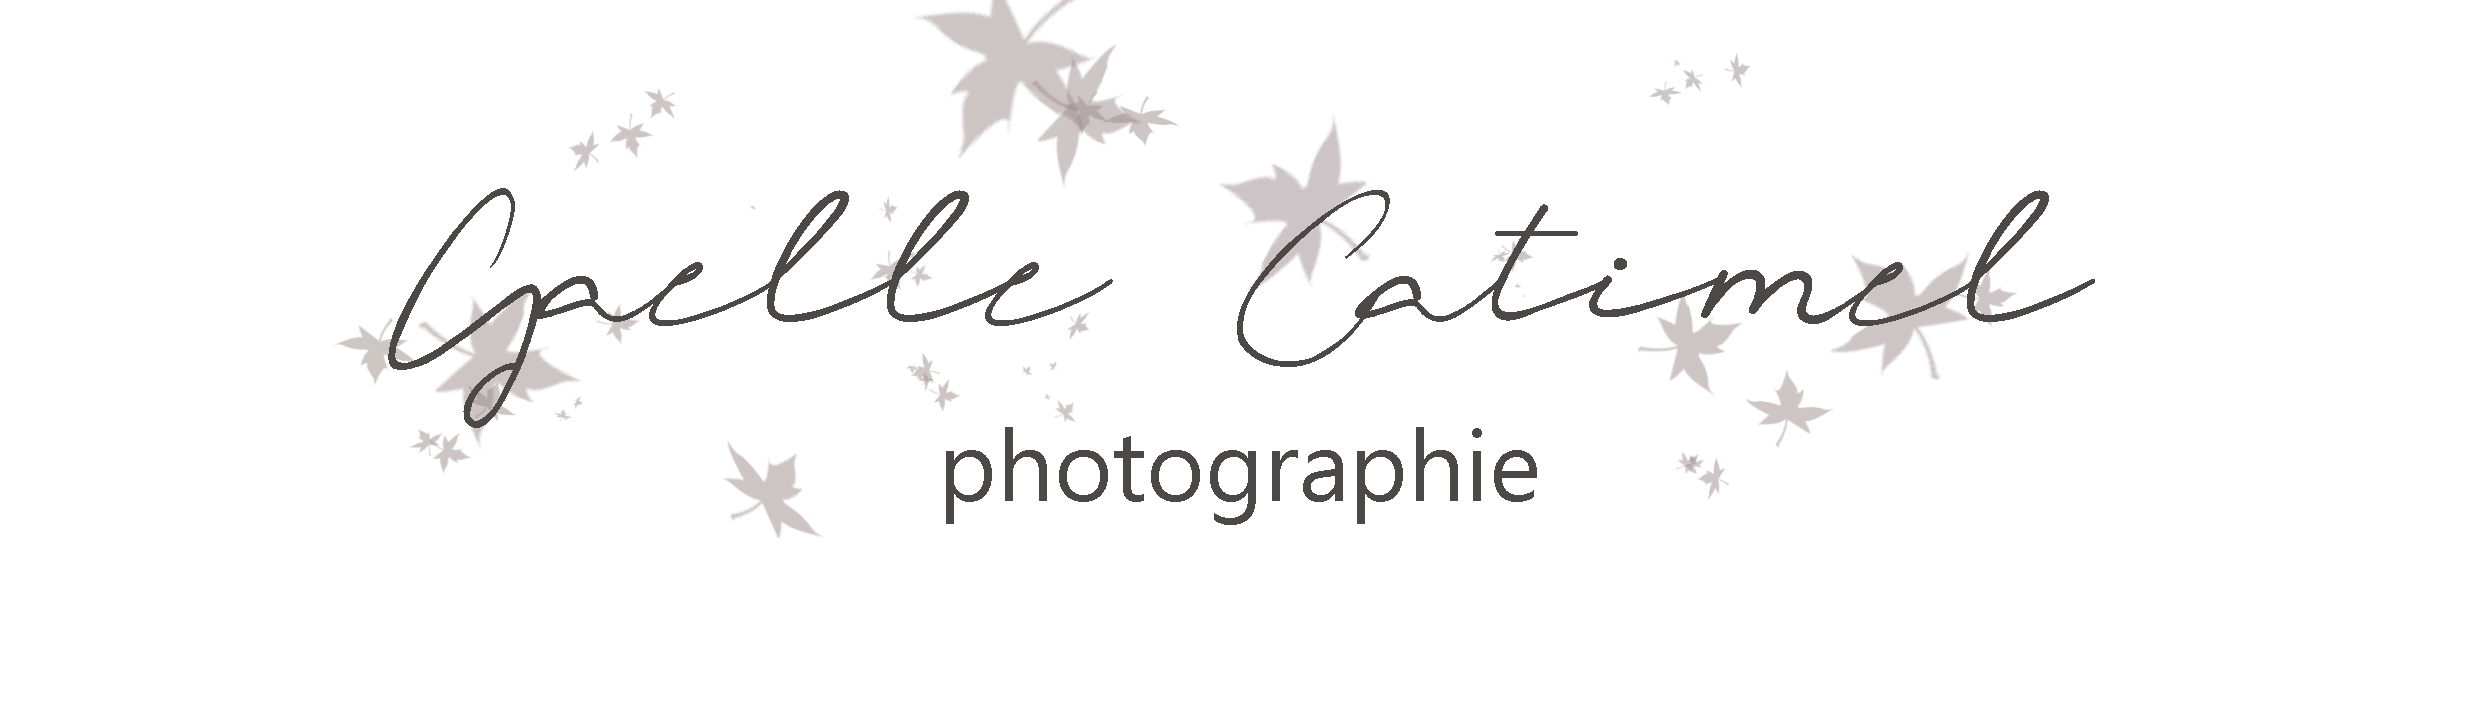 Gaëlle Catimel – photographie